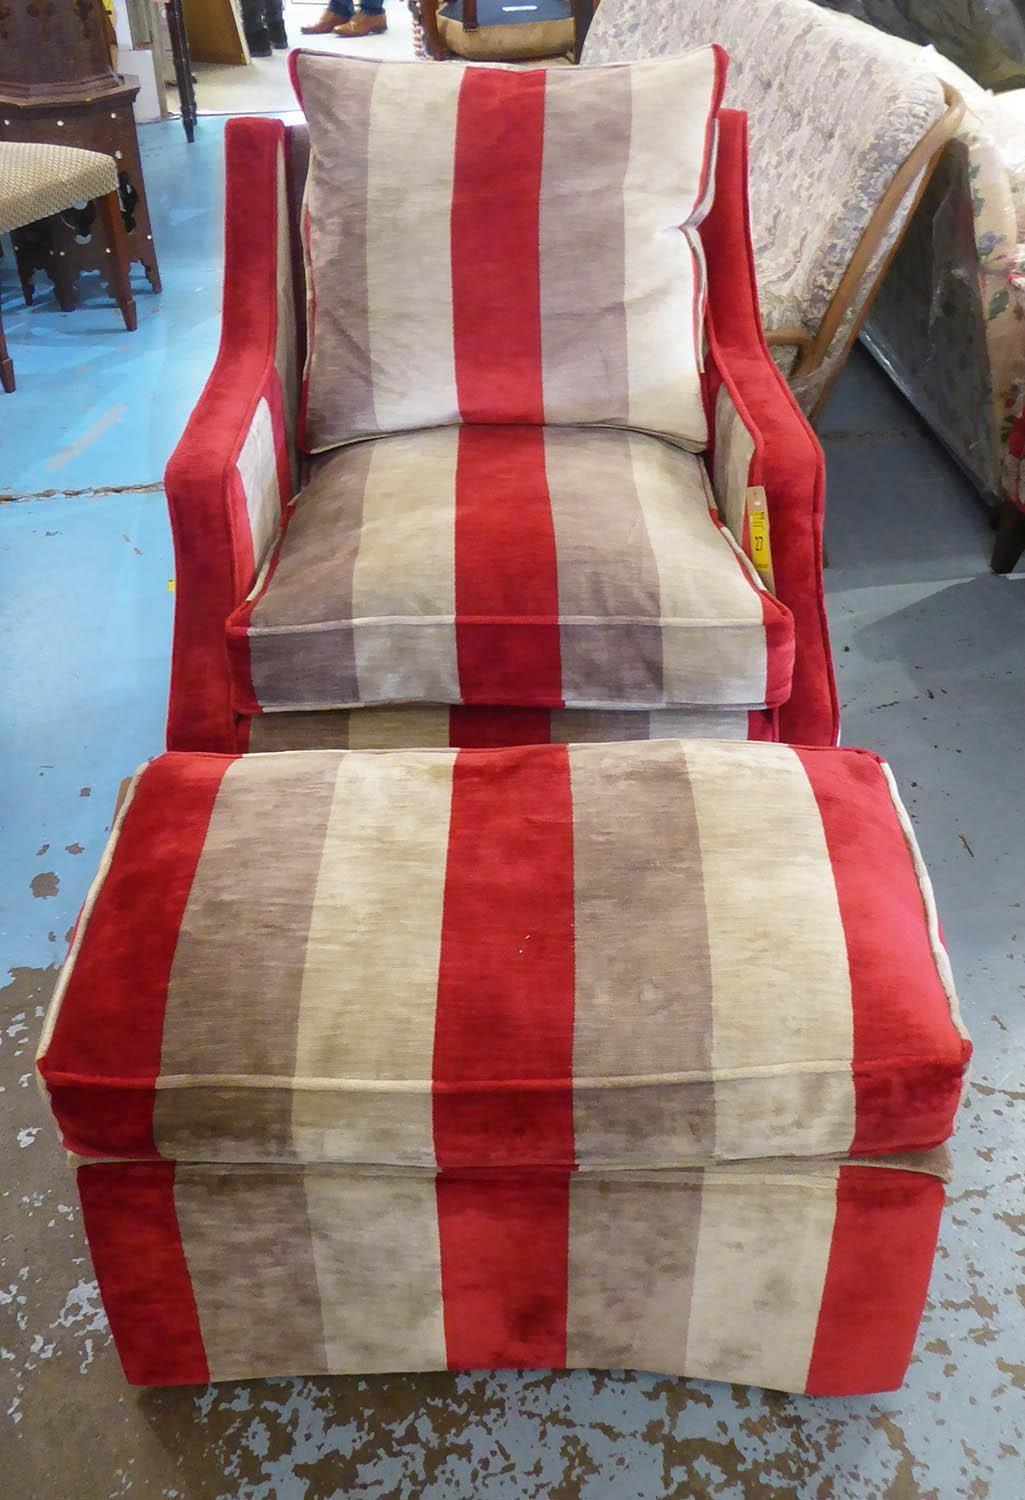 DAVID SEYFRIED ARMCHAIR, with red, beige and brown striped upholstery, 81cm W x 85cm H and a - Image 2 of 4